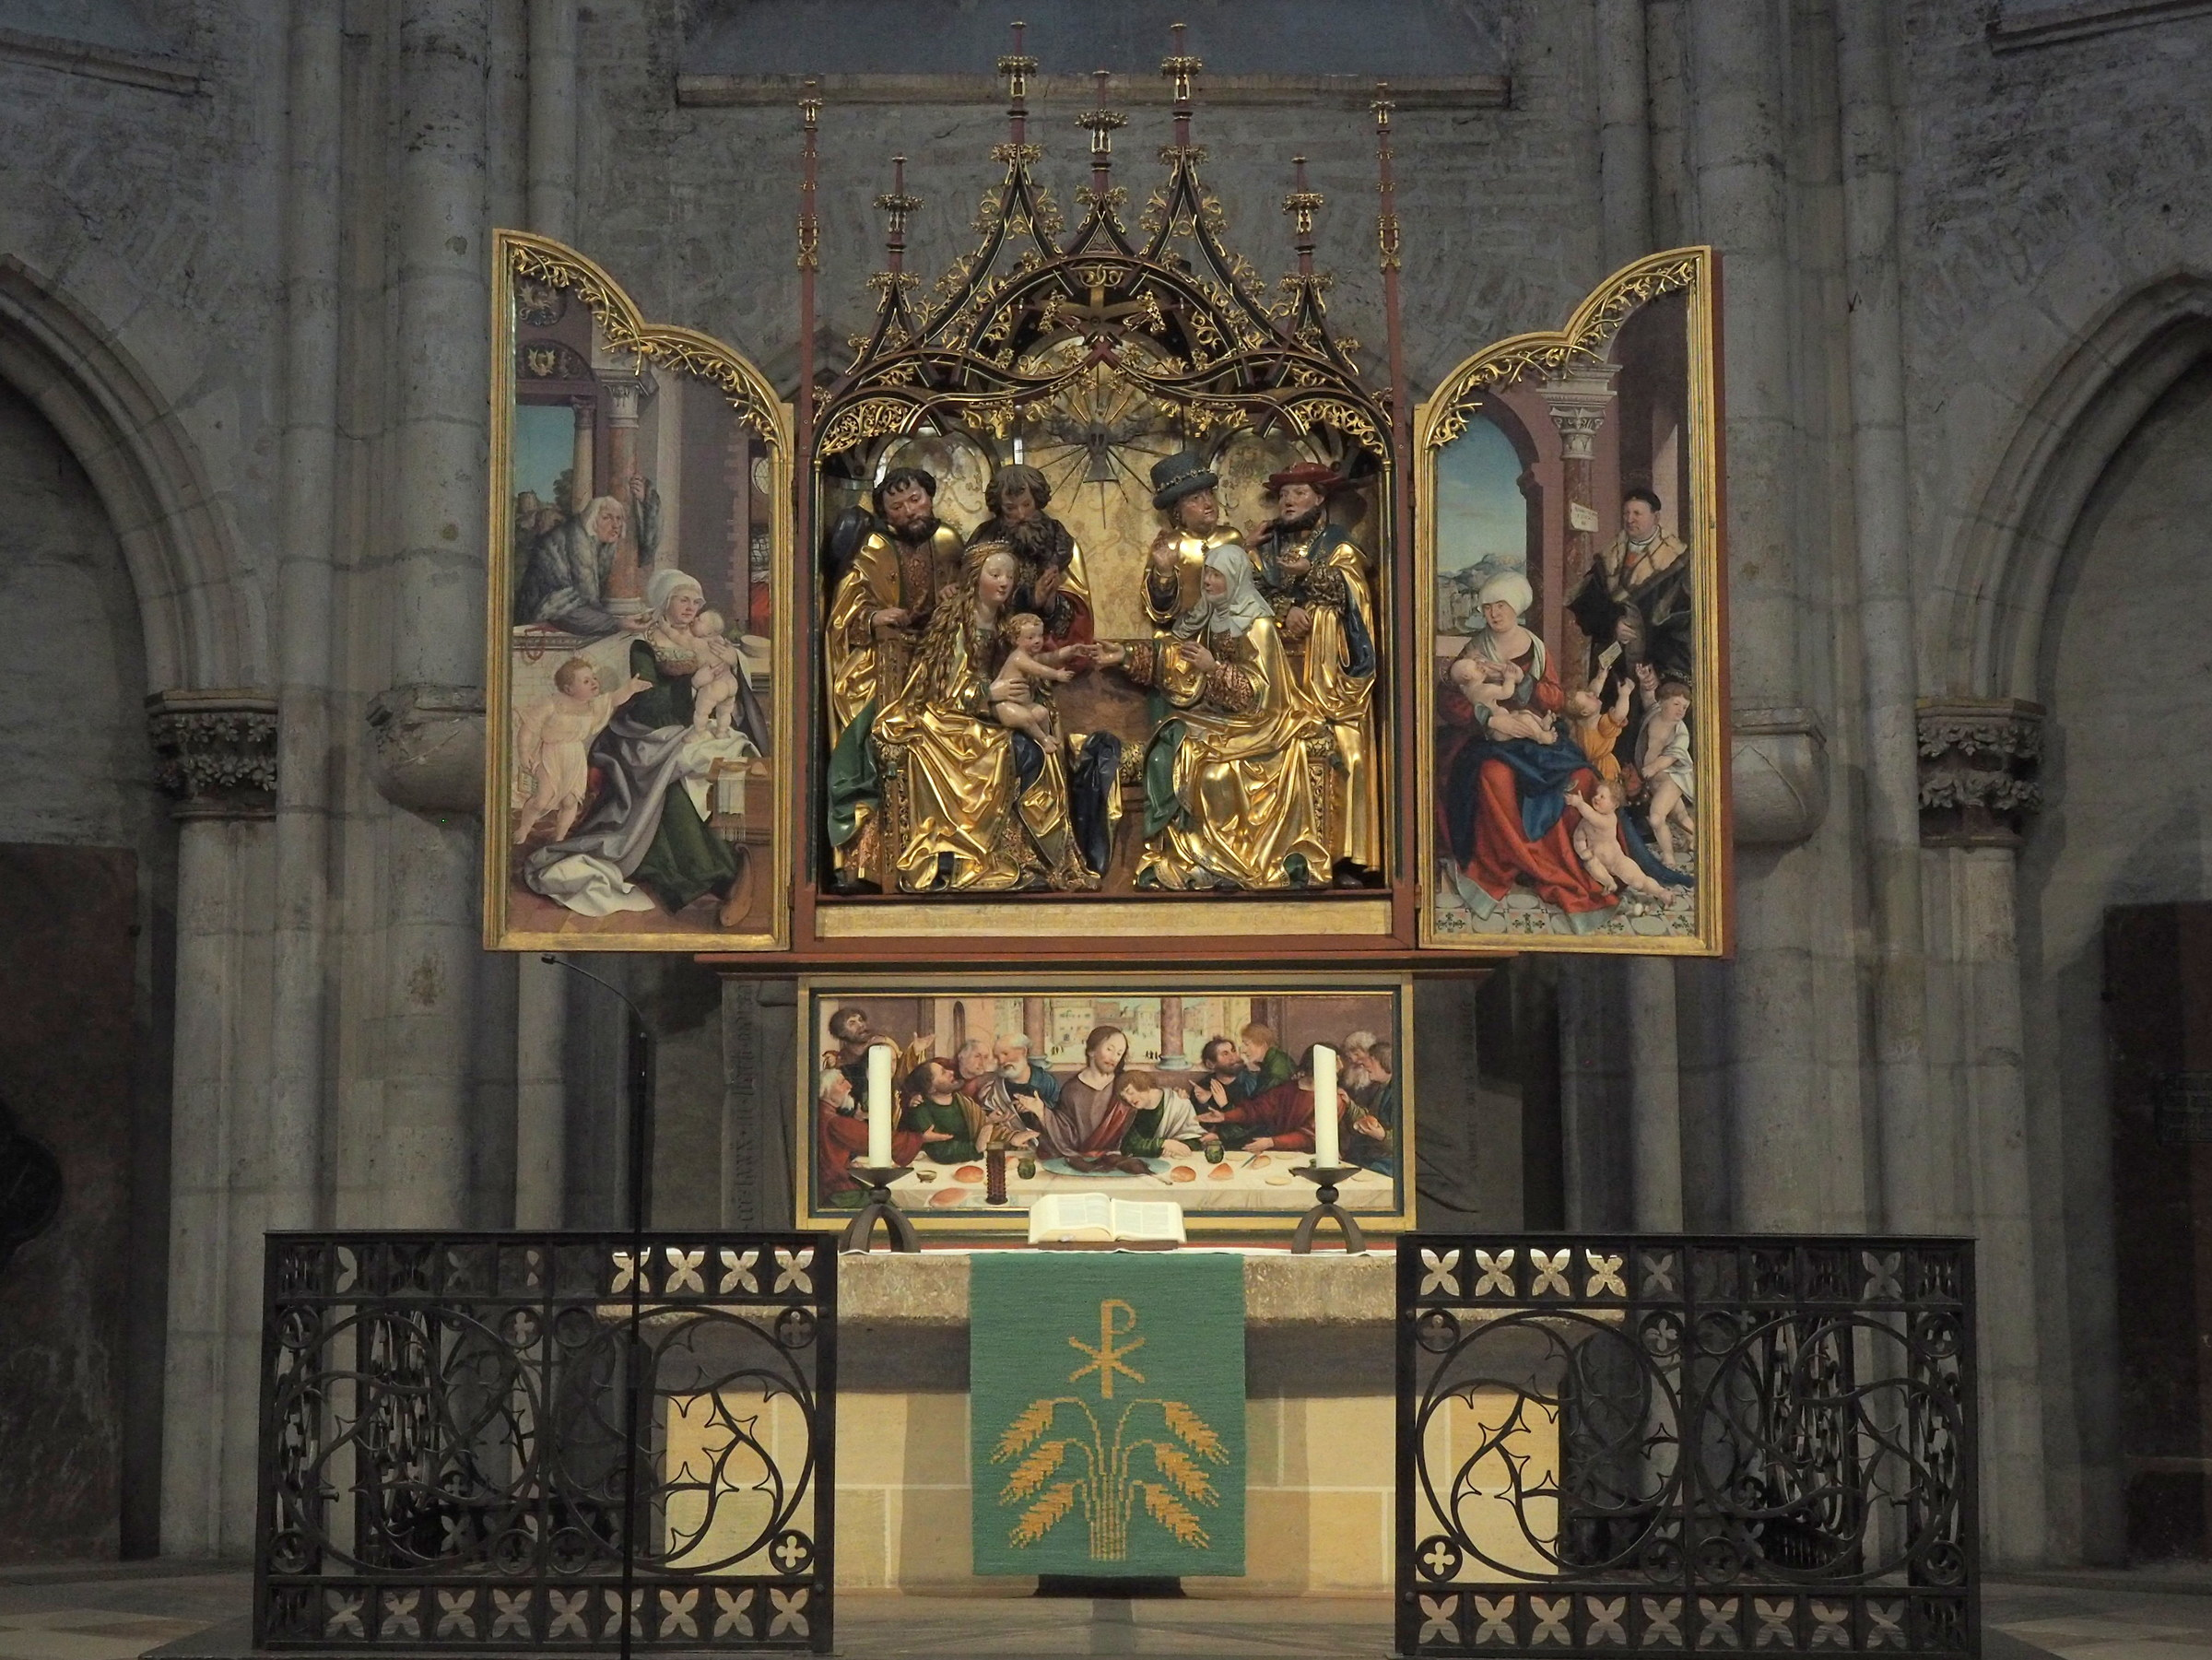 Interior Cathedral of ULM (Germany)...